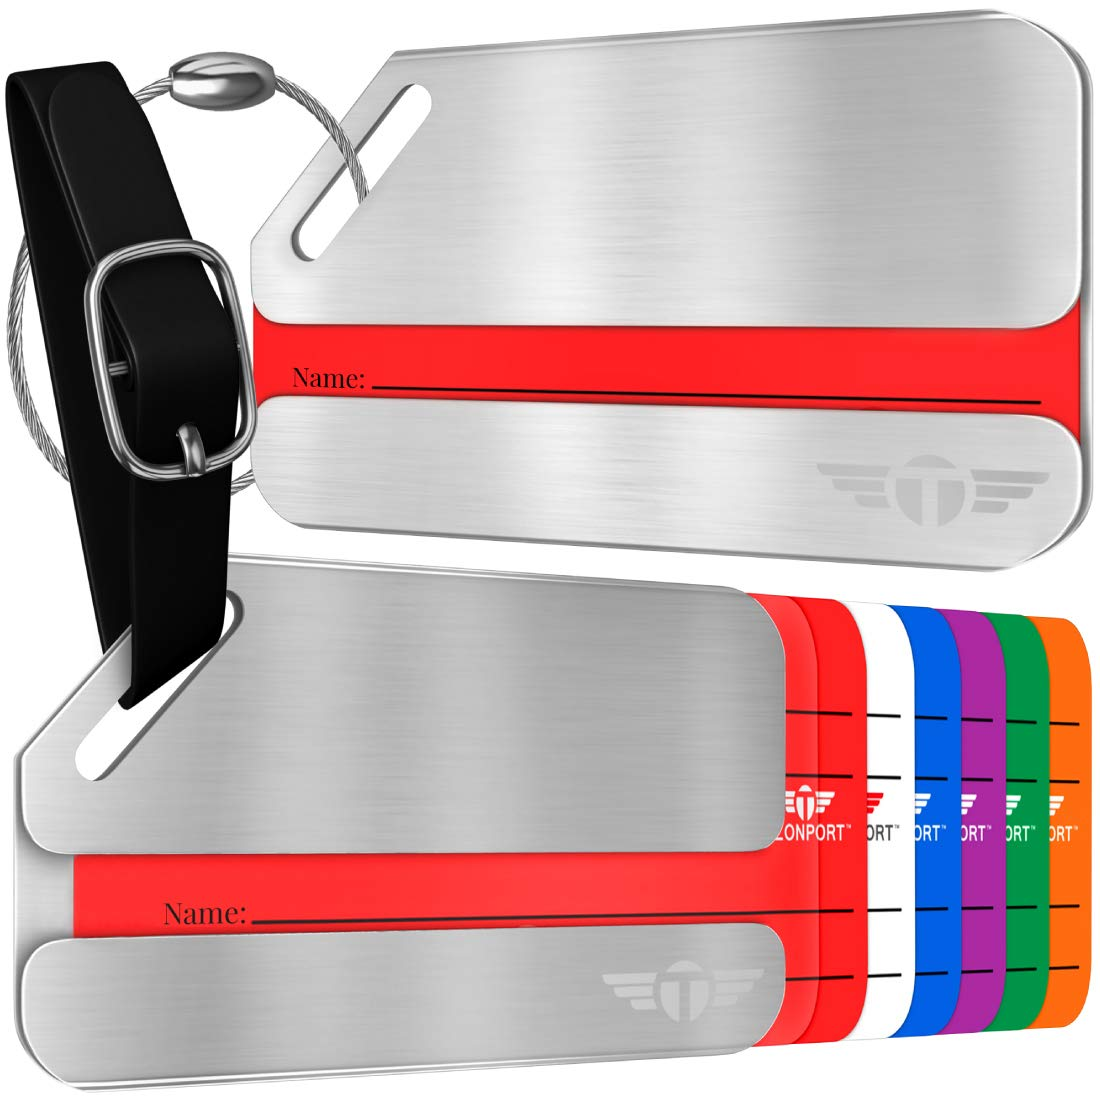 Two Privacy Luggage Tags Stainless Steel Metal ID Bag Tag With Lifetime Never Lost Guarantee by Talonport